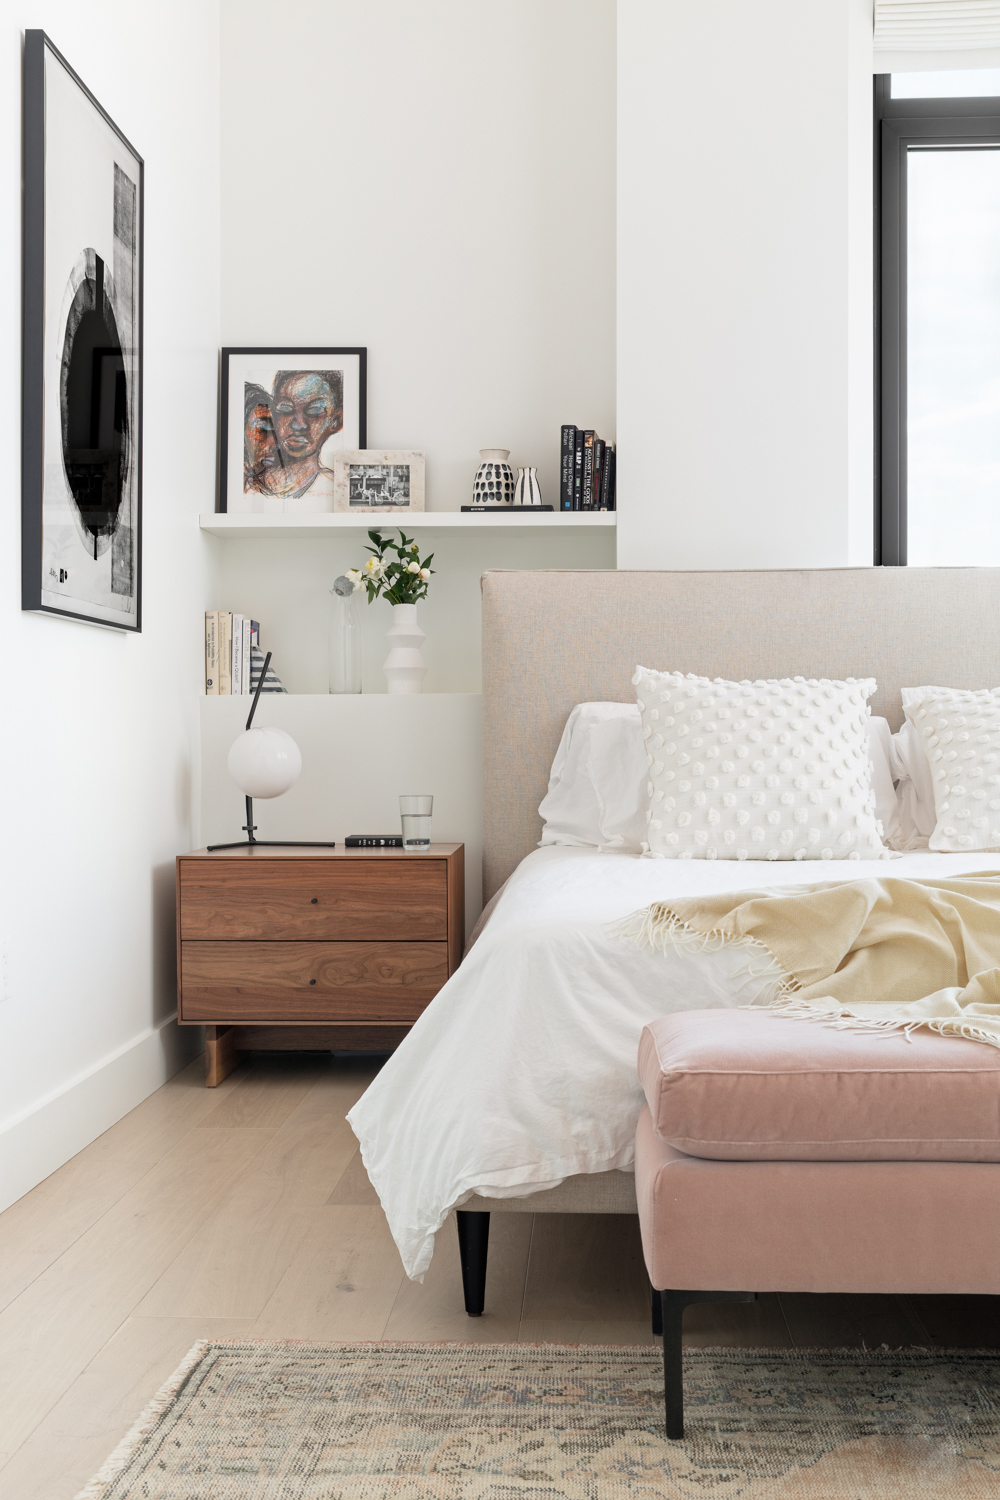 Millennial Pink and Gen-Z Yellow Get the Grown-Up Treatment in this Park Slope Home